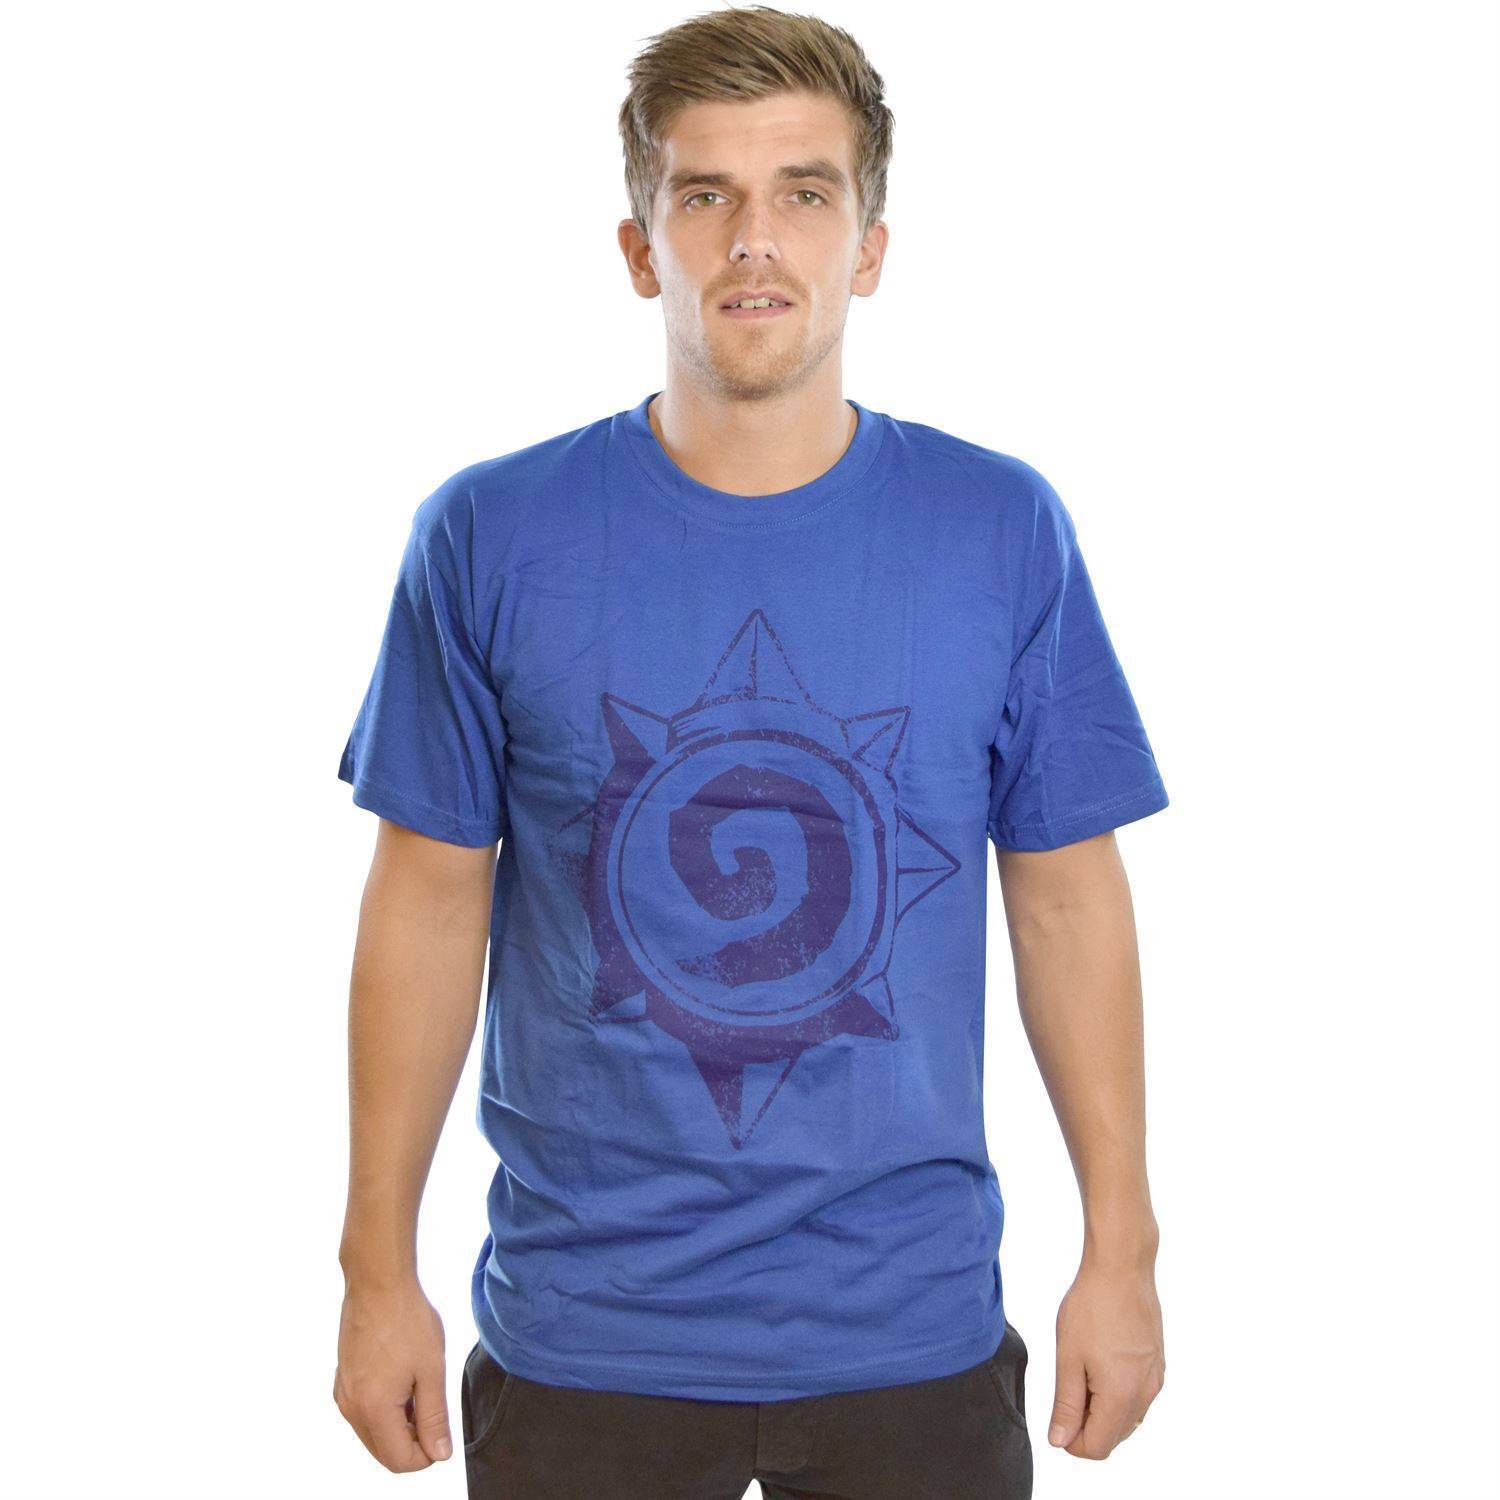 Hearthstone Shirt